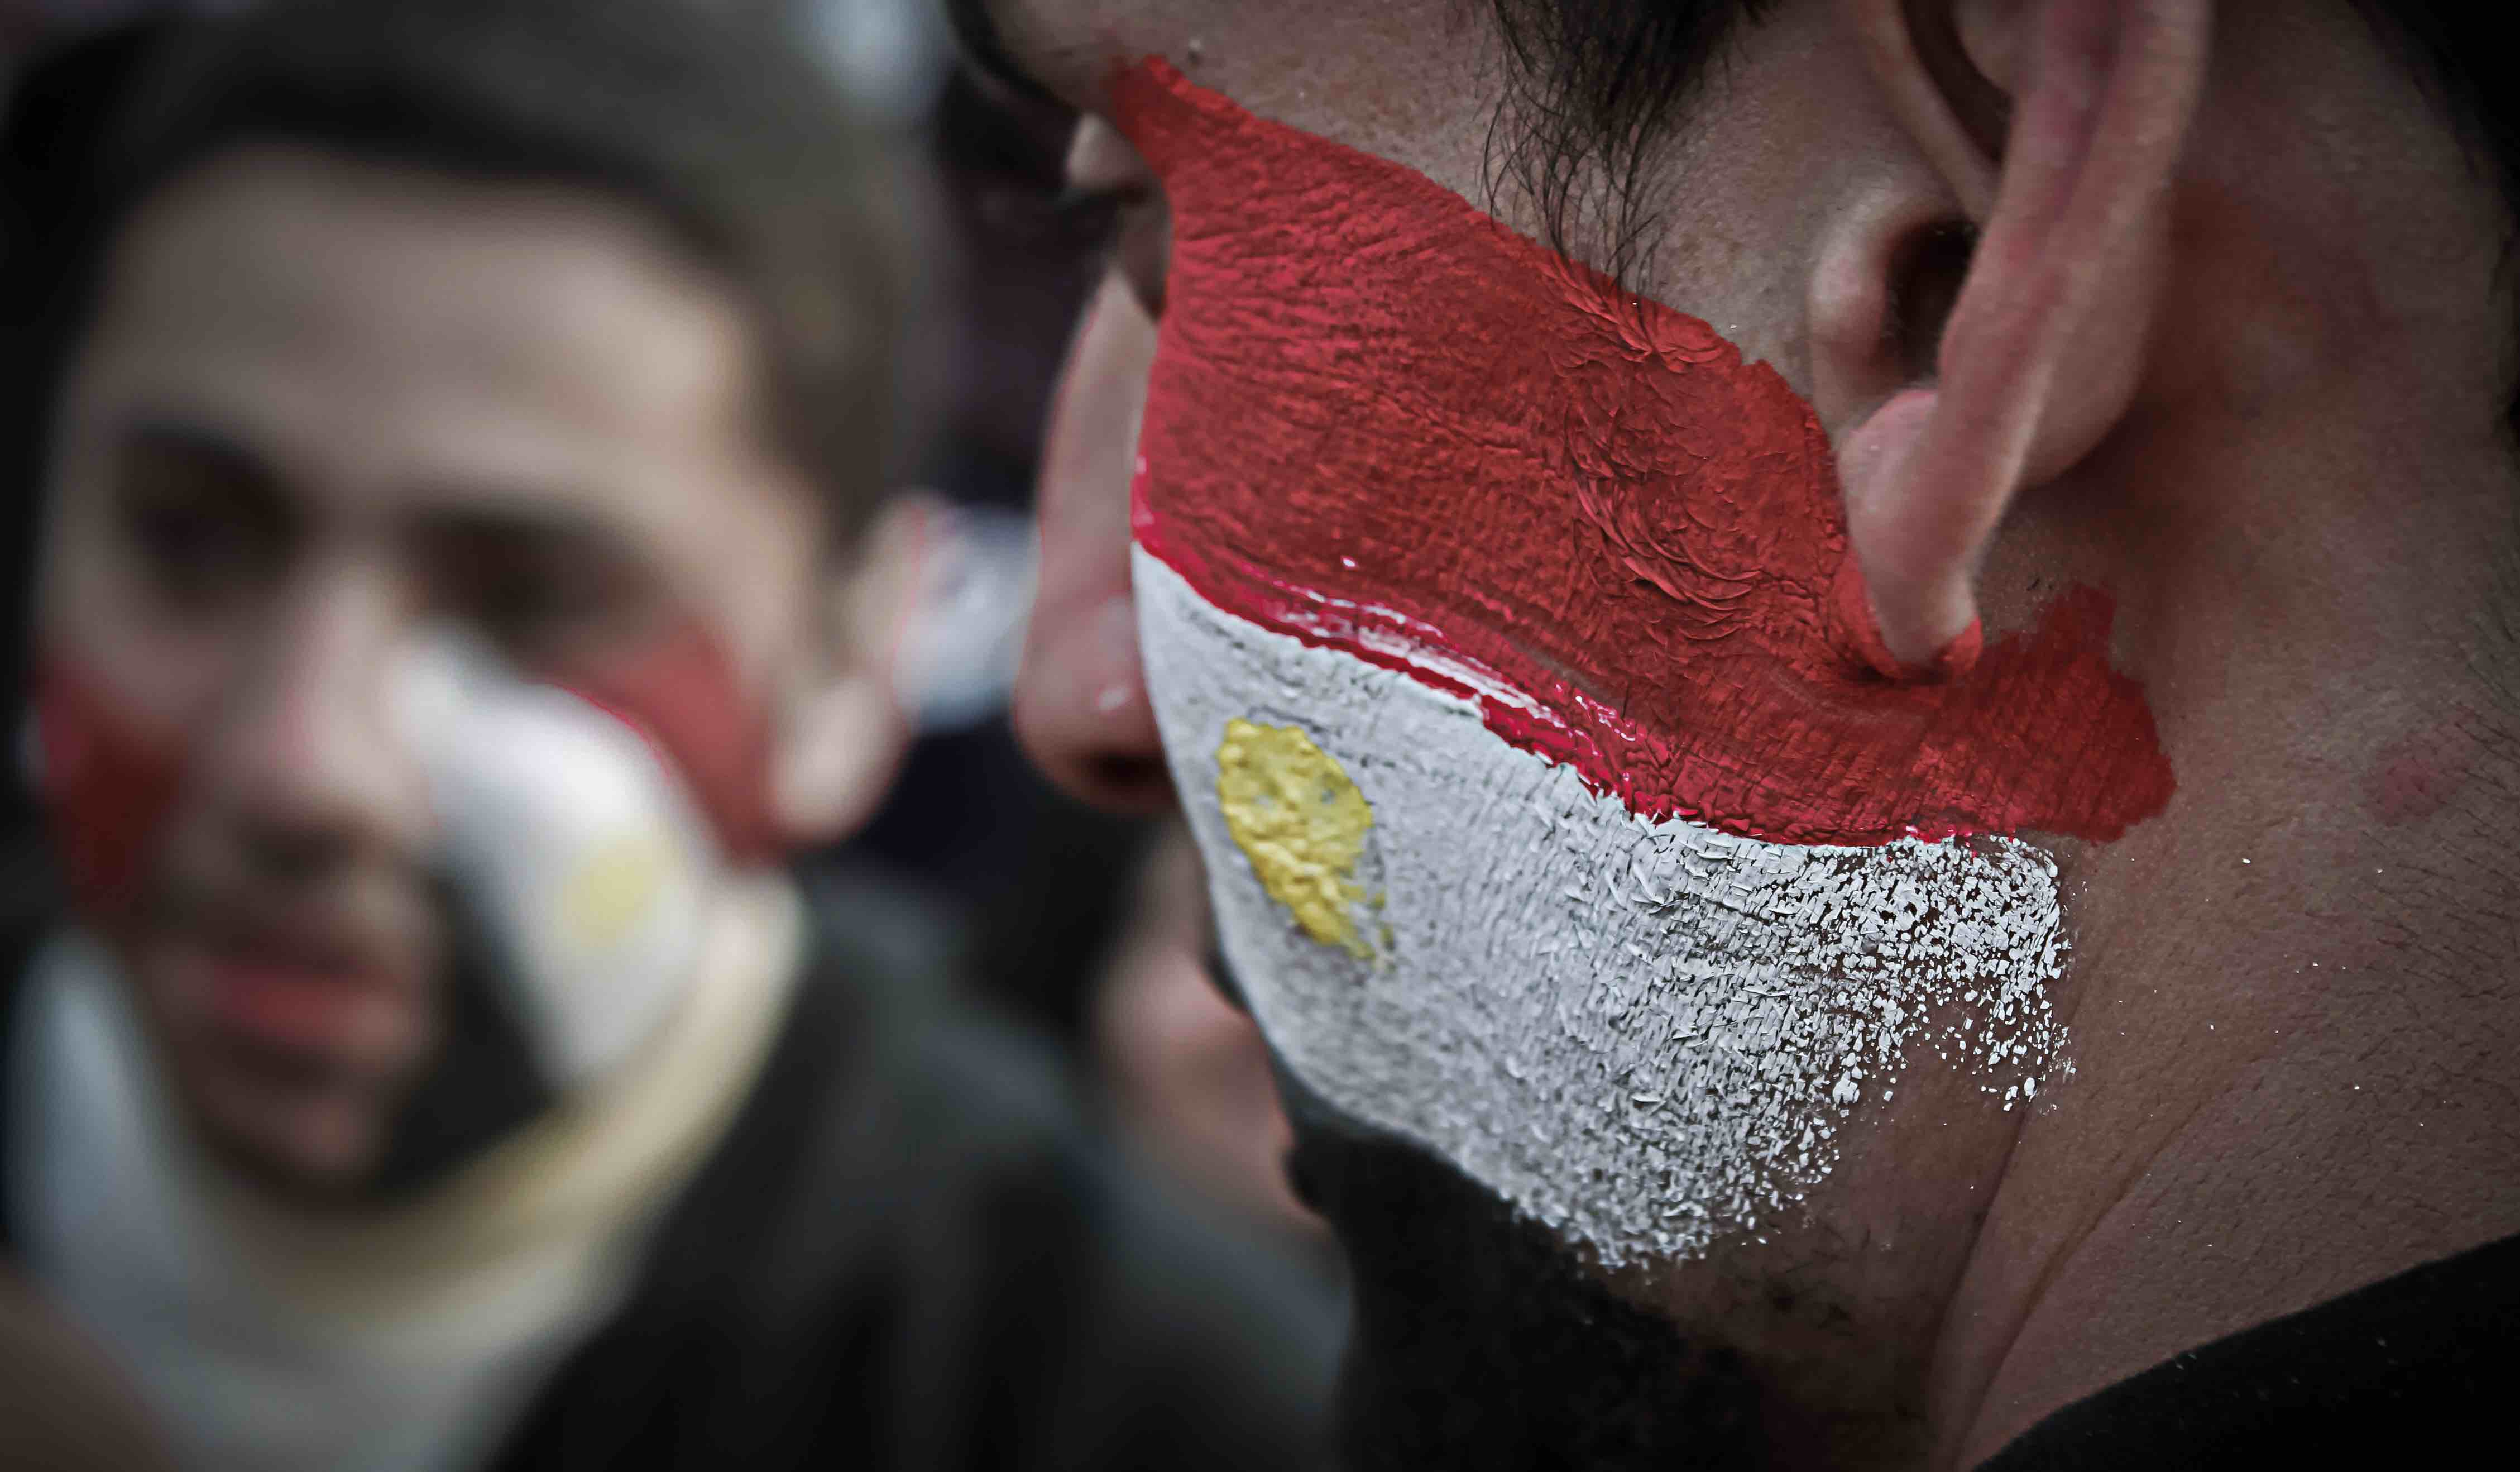 Rallies in Tahrir Square, Cairo, 2011 (Photo: Ahmad Hammoud/Flickr)